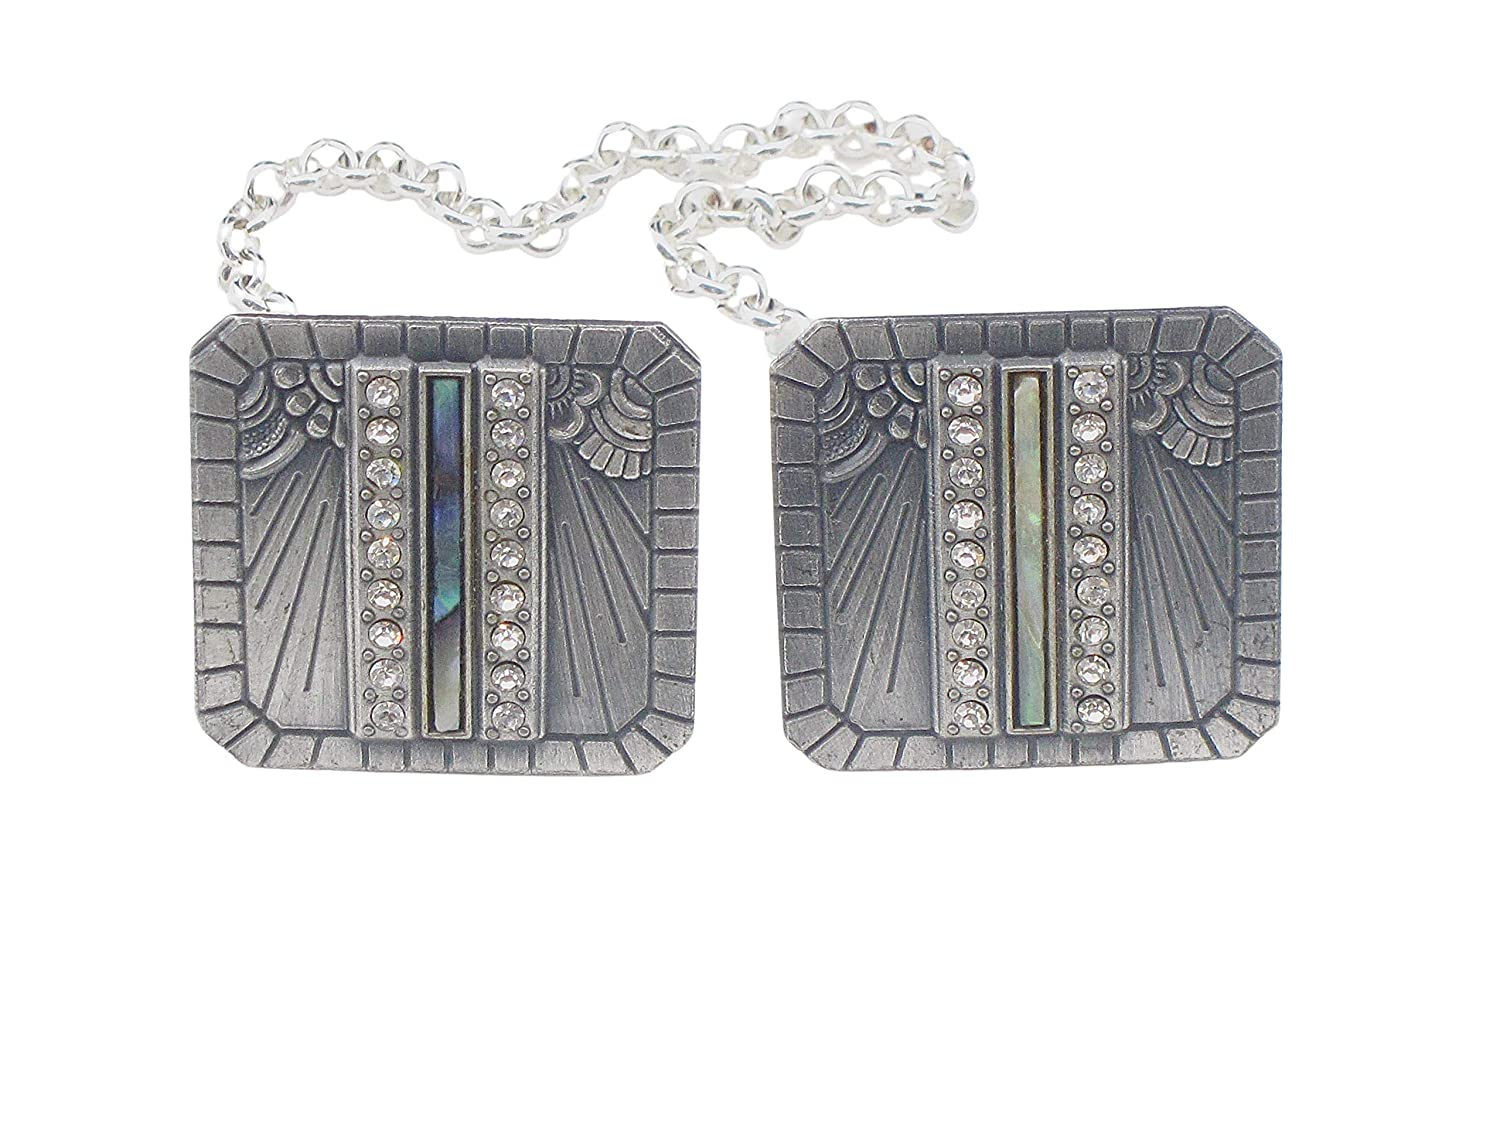 Art Deco Style Clips Challenge the lowest price of Japan ☆ Sweater Max 81% OFF